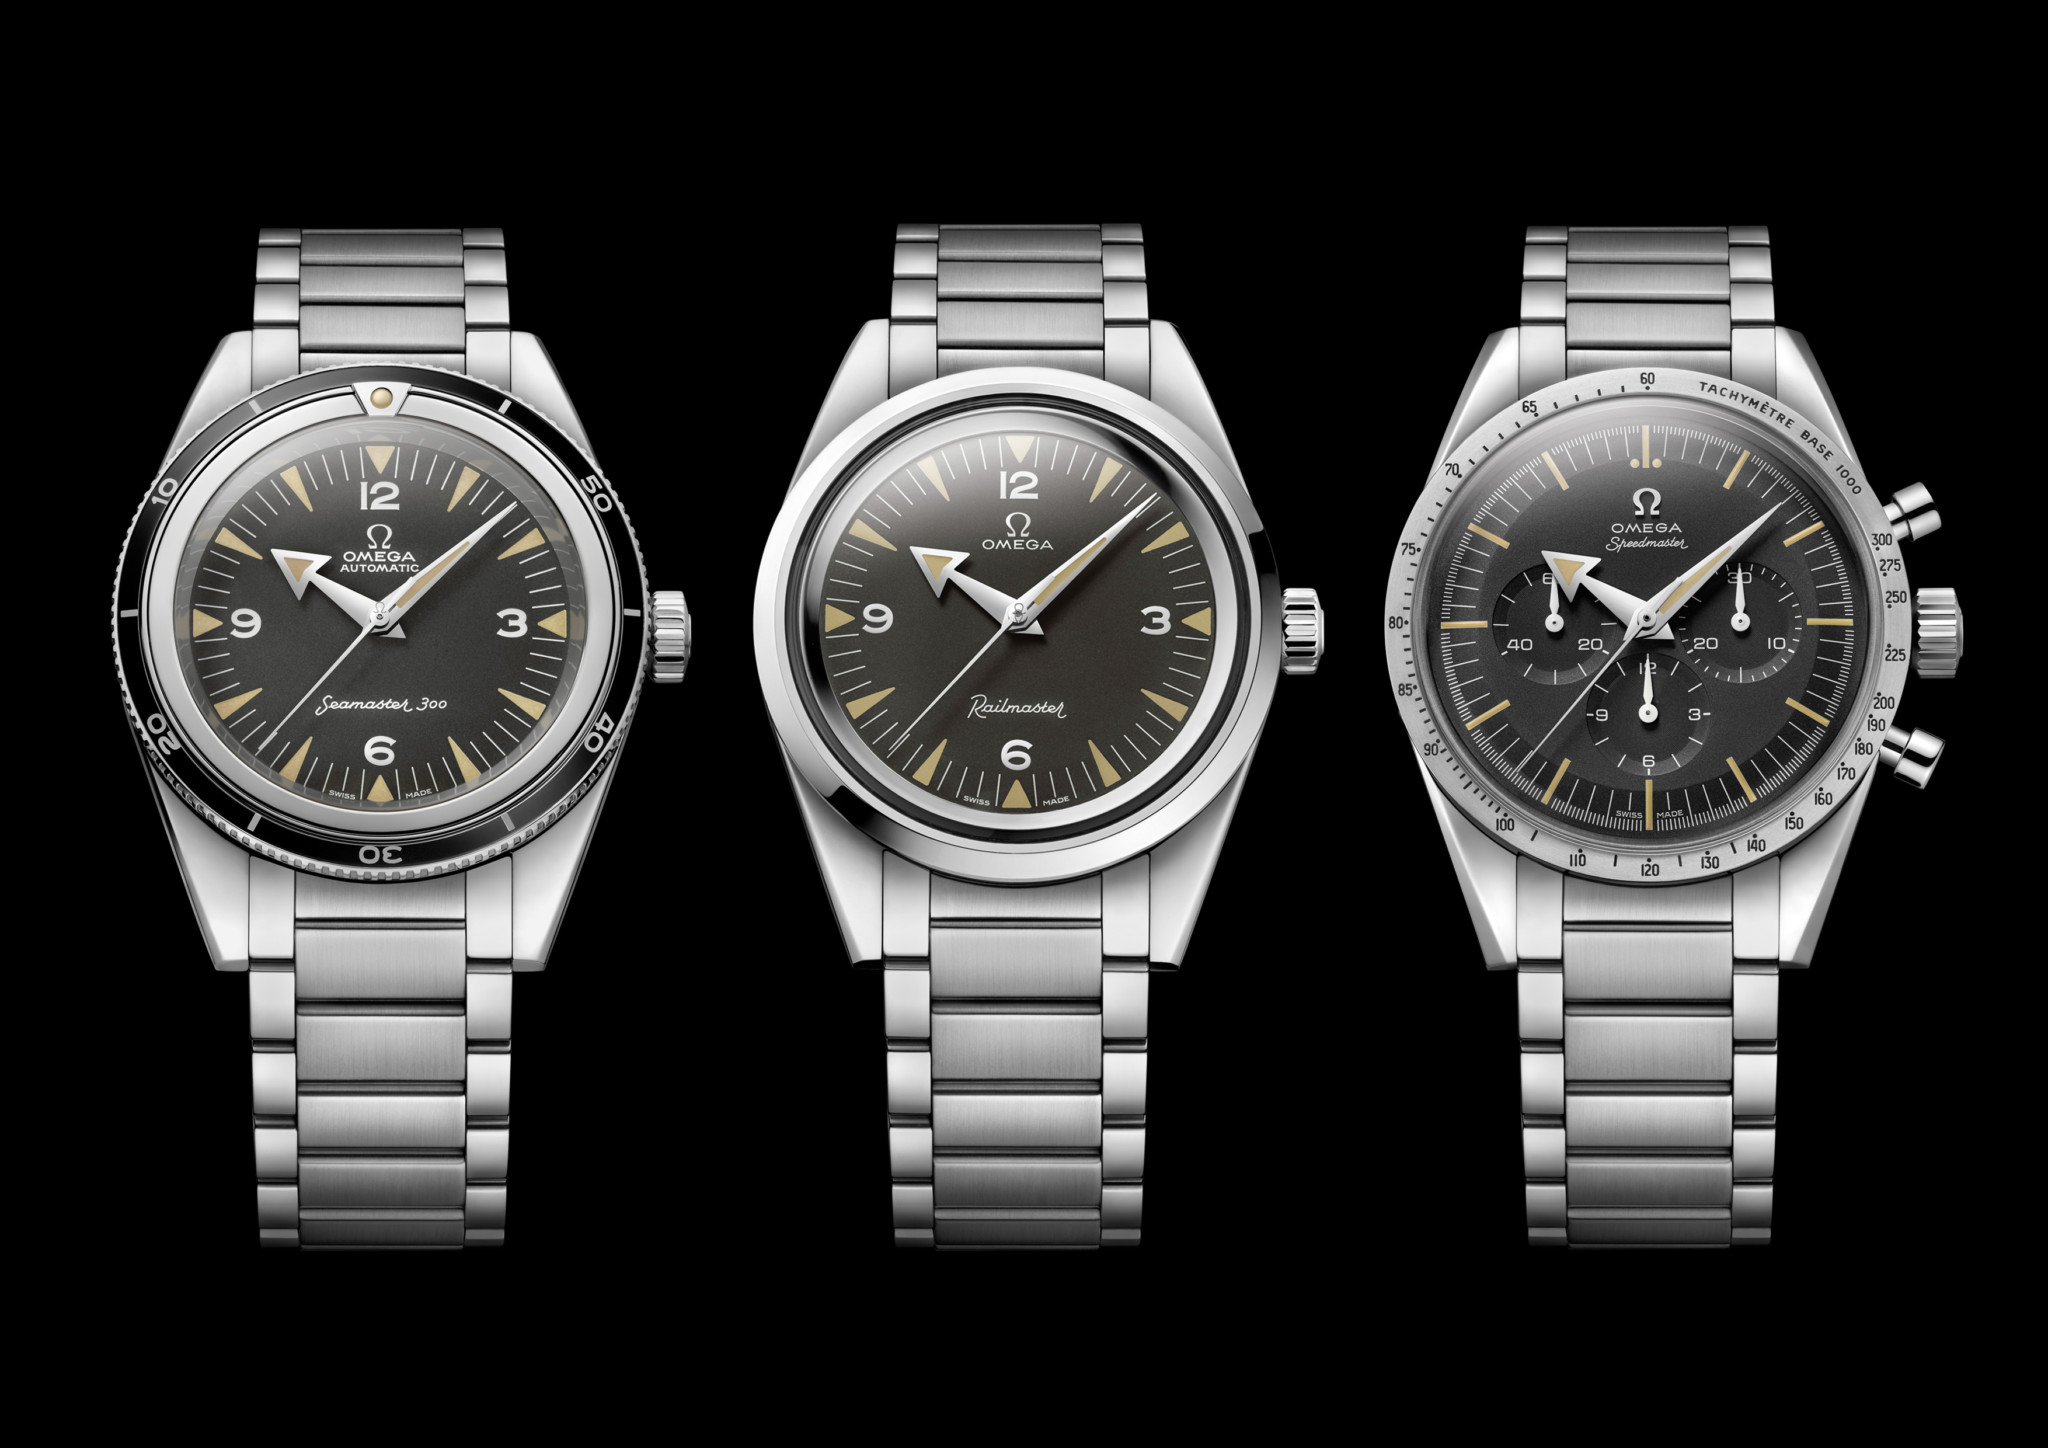 The trilogy of anniversary models from Omega is made up of the Seamaster, Railmaster and Speedmaster.